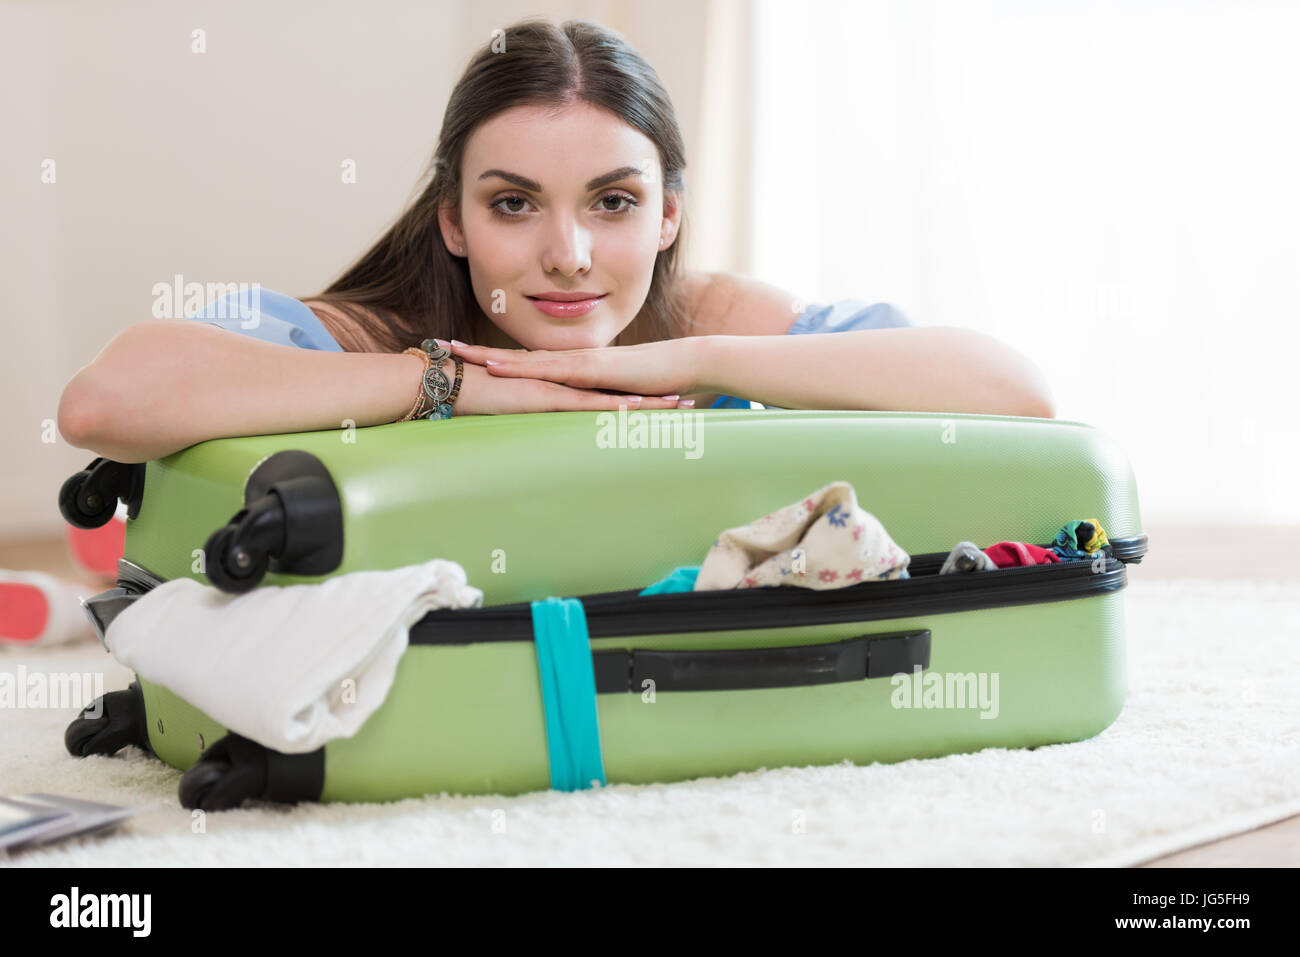 Beautiful young brunette woman packing suitcase and looking at camera, packing luggage concept - Stock Image